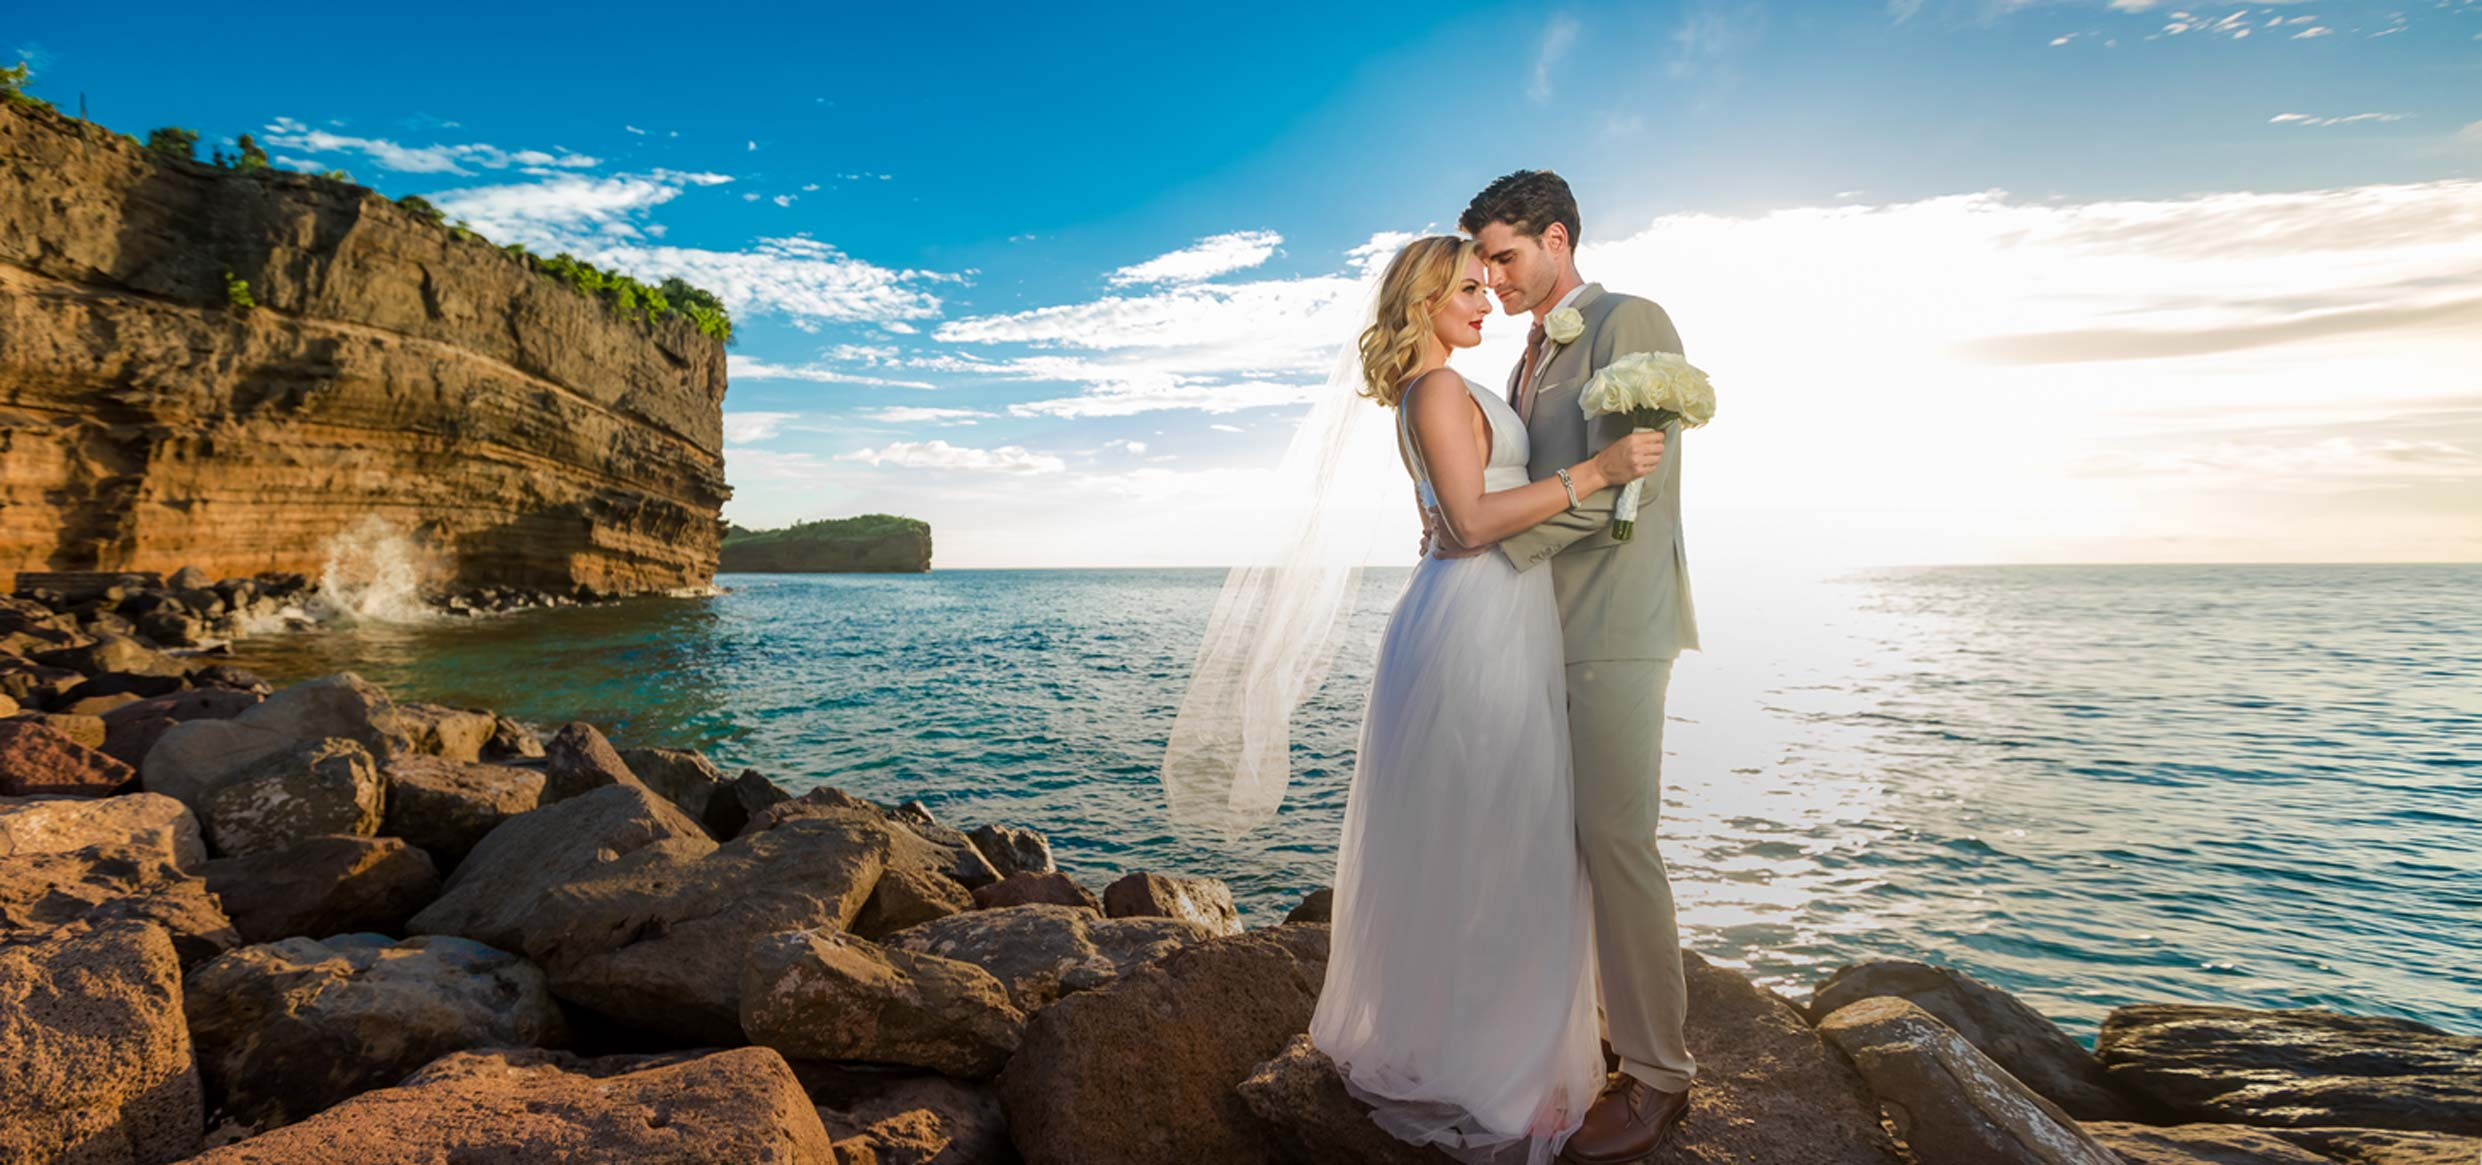 Puerto Rico Wedding Package.Caribbean Destination Wedding And Honeymoon Packages Sandals